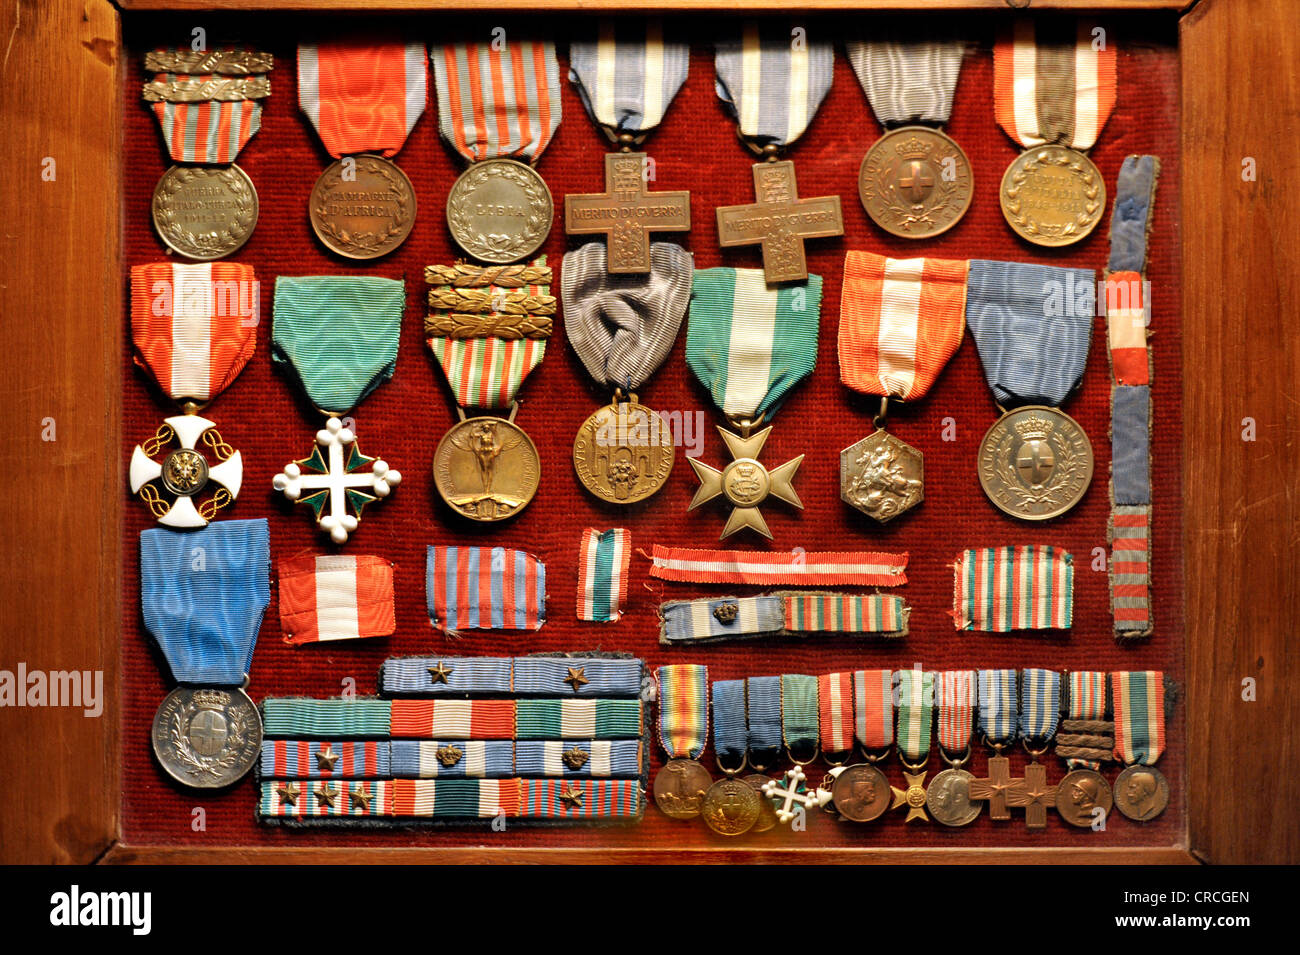 Pietro Rivas's medals and awards exhibited in the Museum of the National Memorial to King Vittorio Emanuele - Stock Image